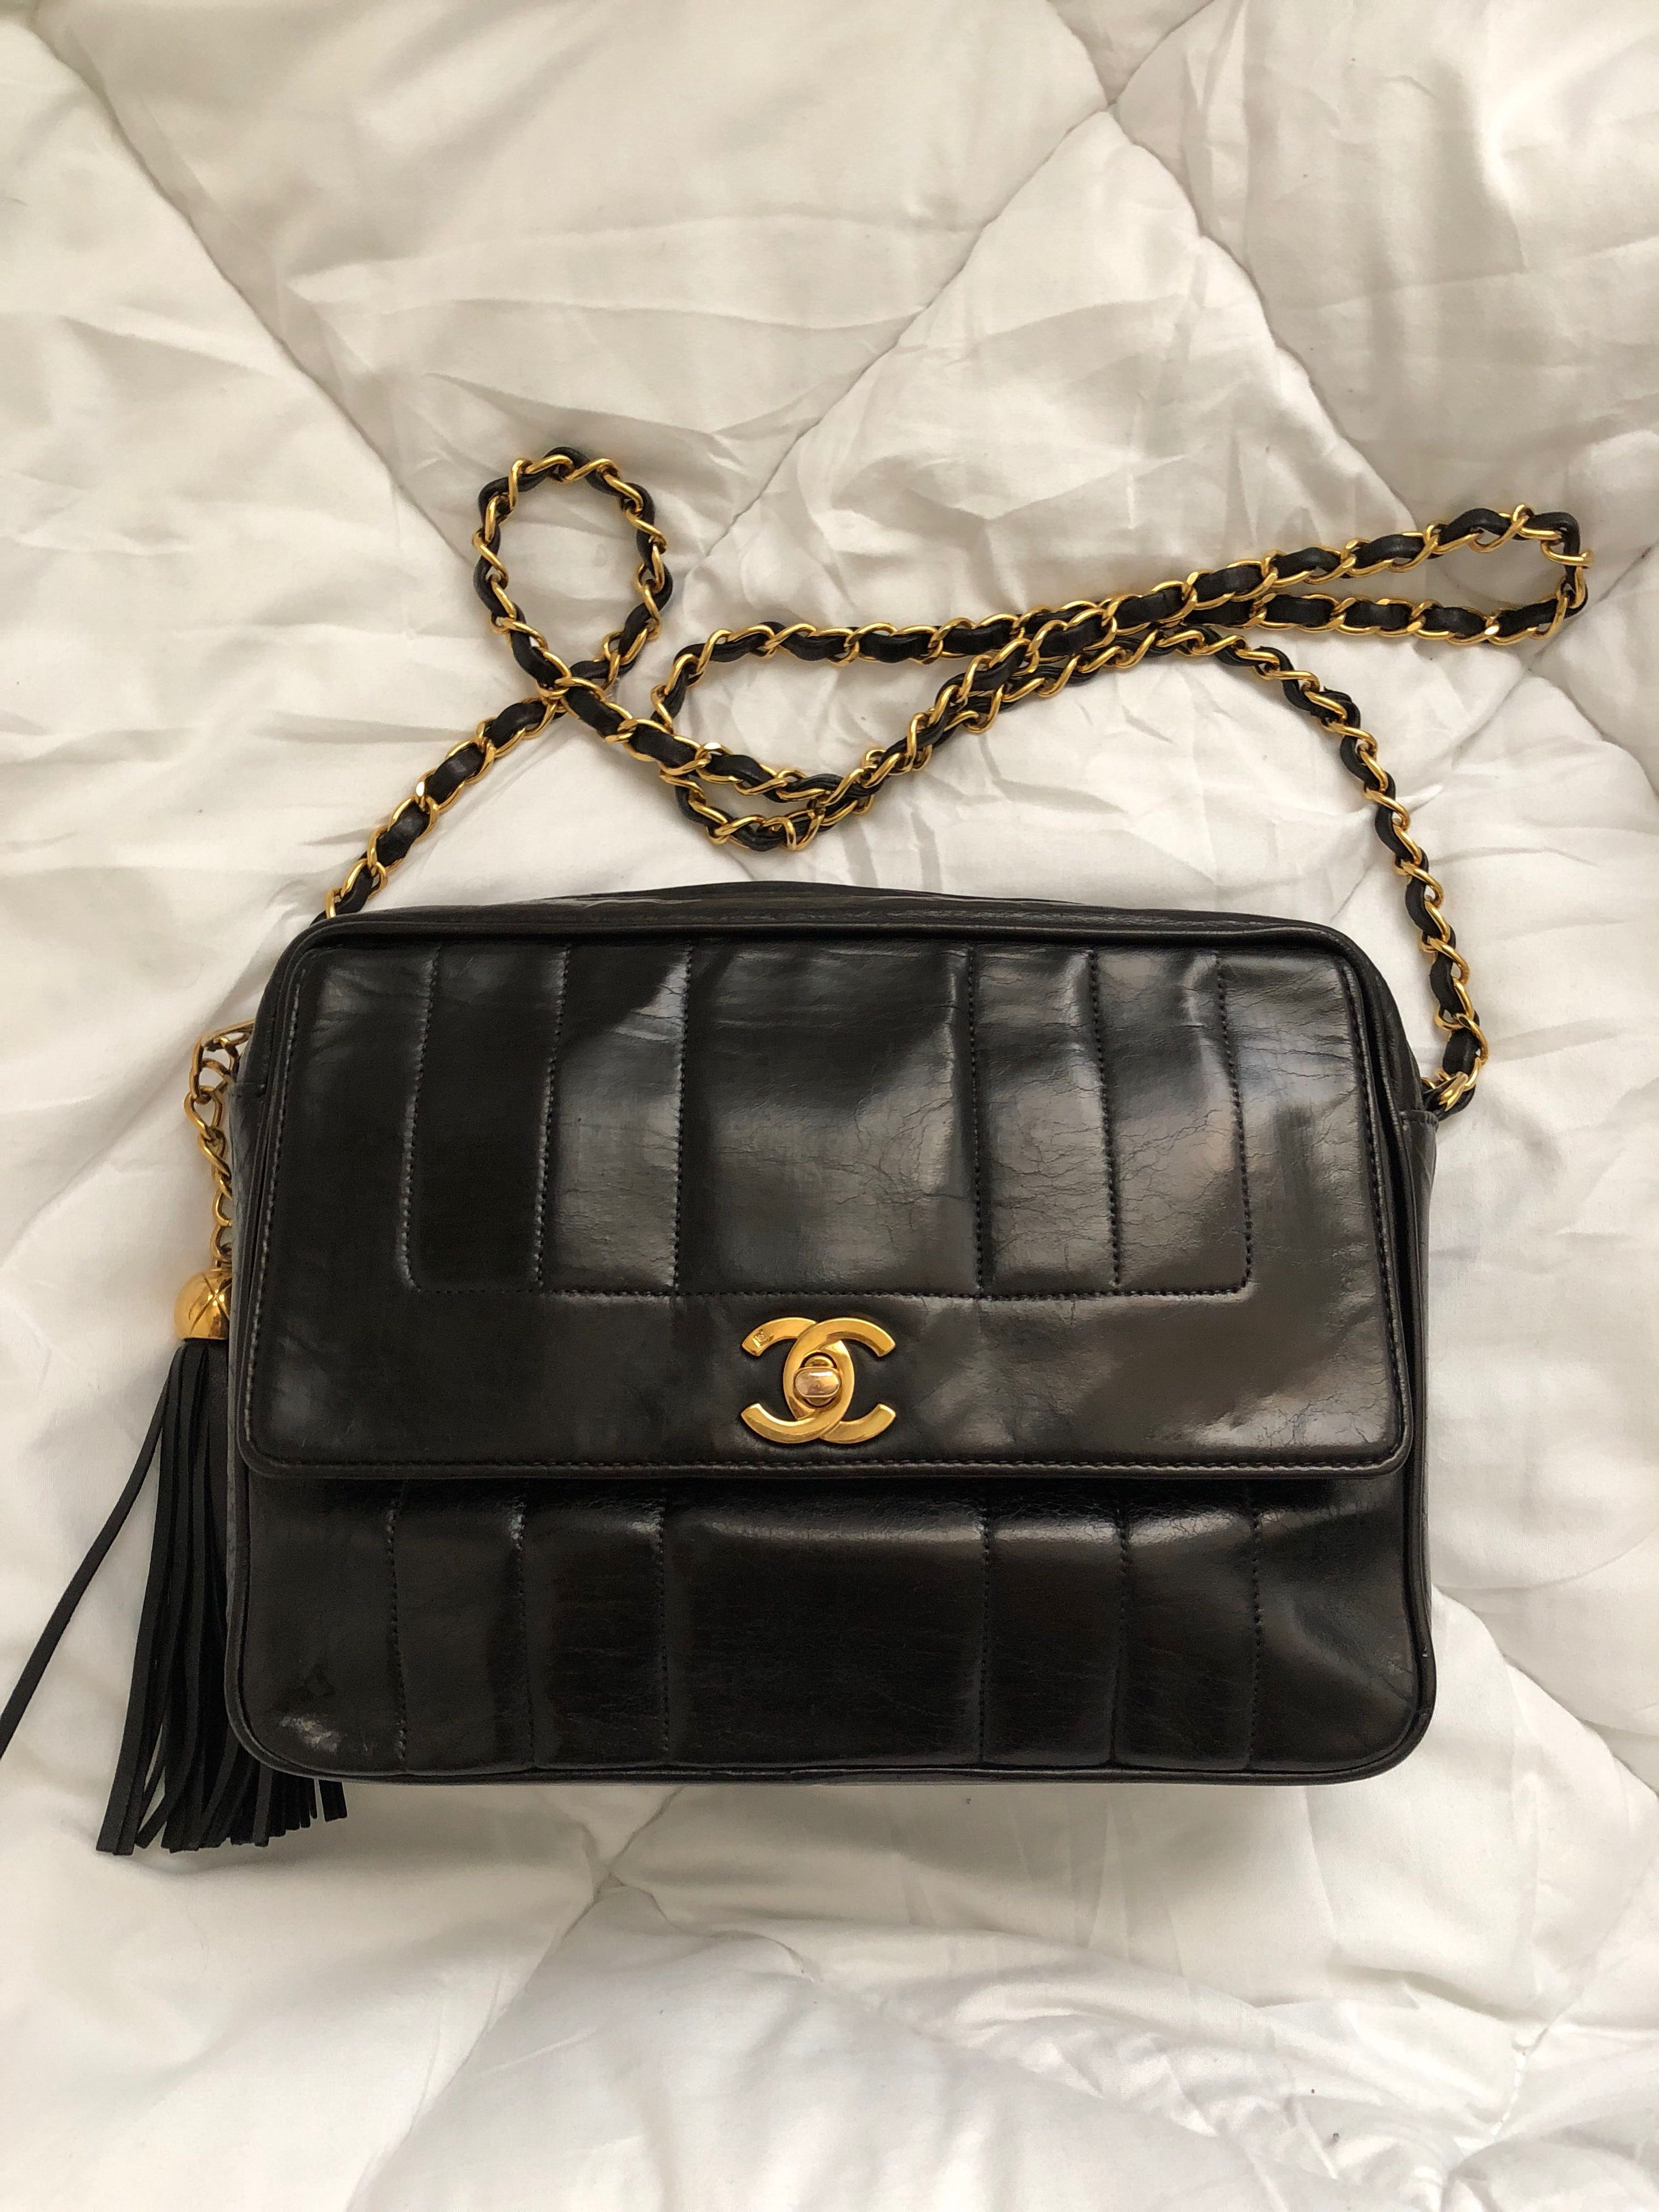 ab33609f0e1a Chanel Vertical Quilted Camera Bag - Vintage, Luxury, Bags & Wallets ...